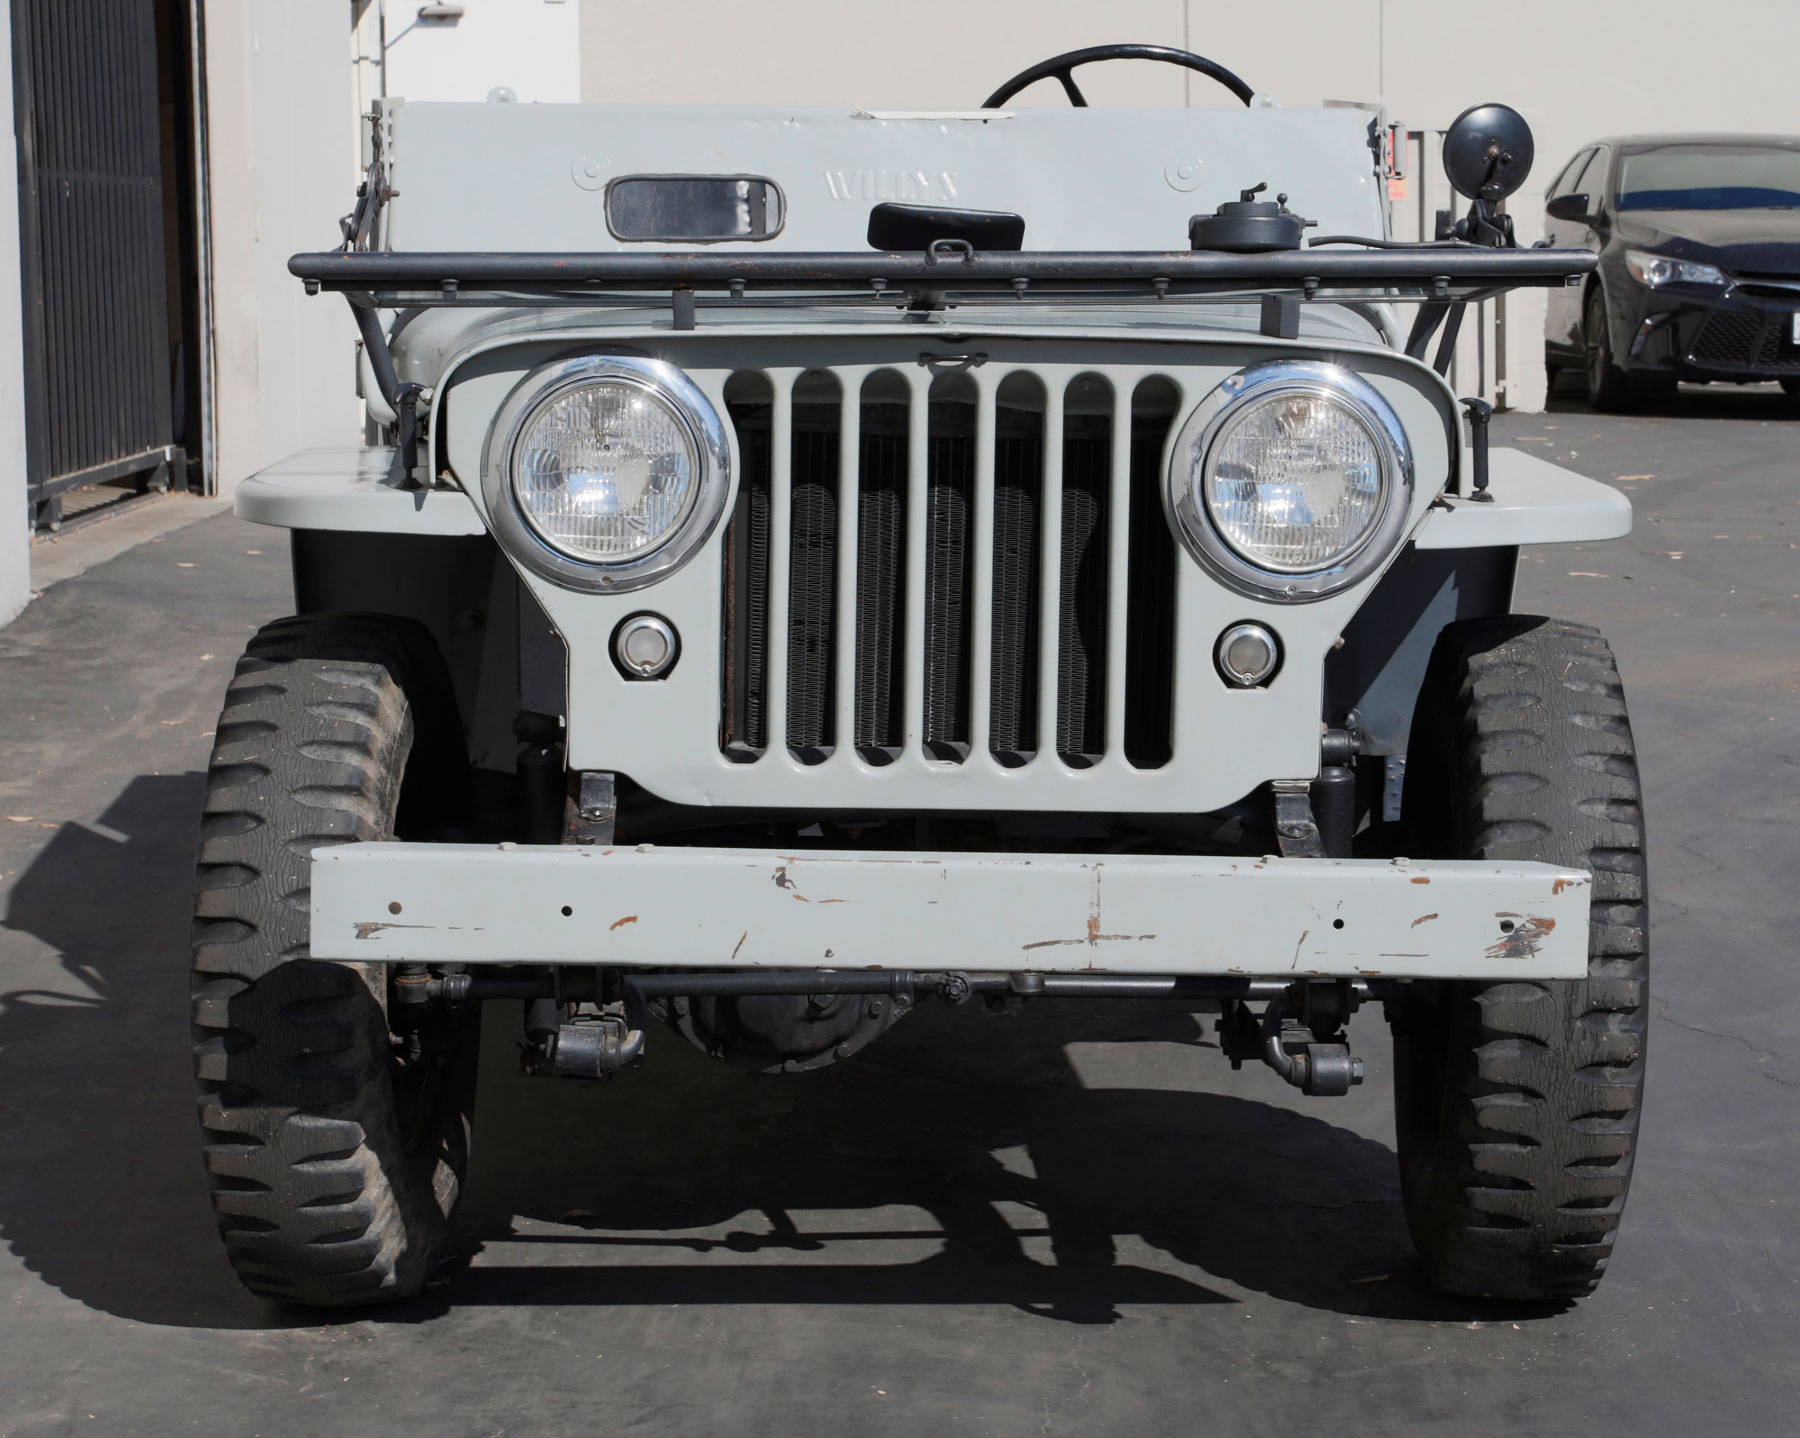 Nellybelle, the 1946 Willys CJ-2A Jeep front